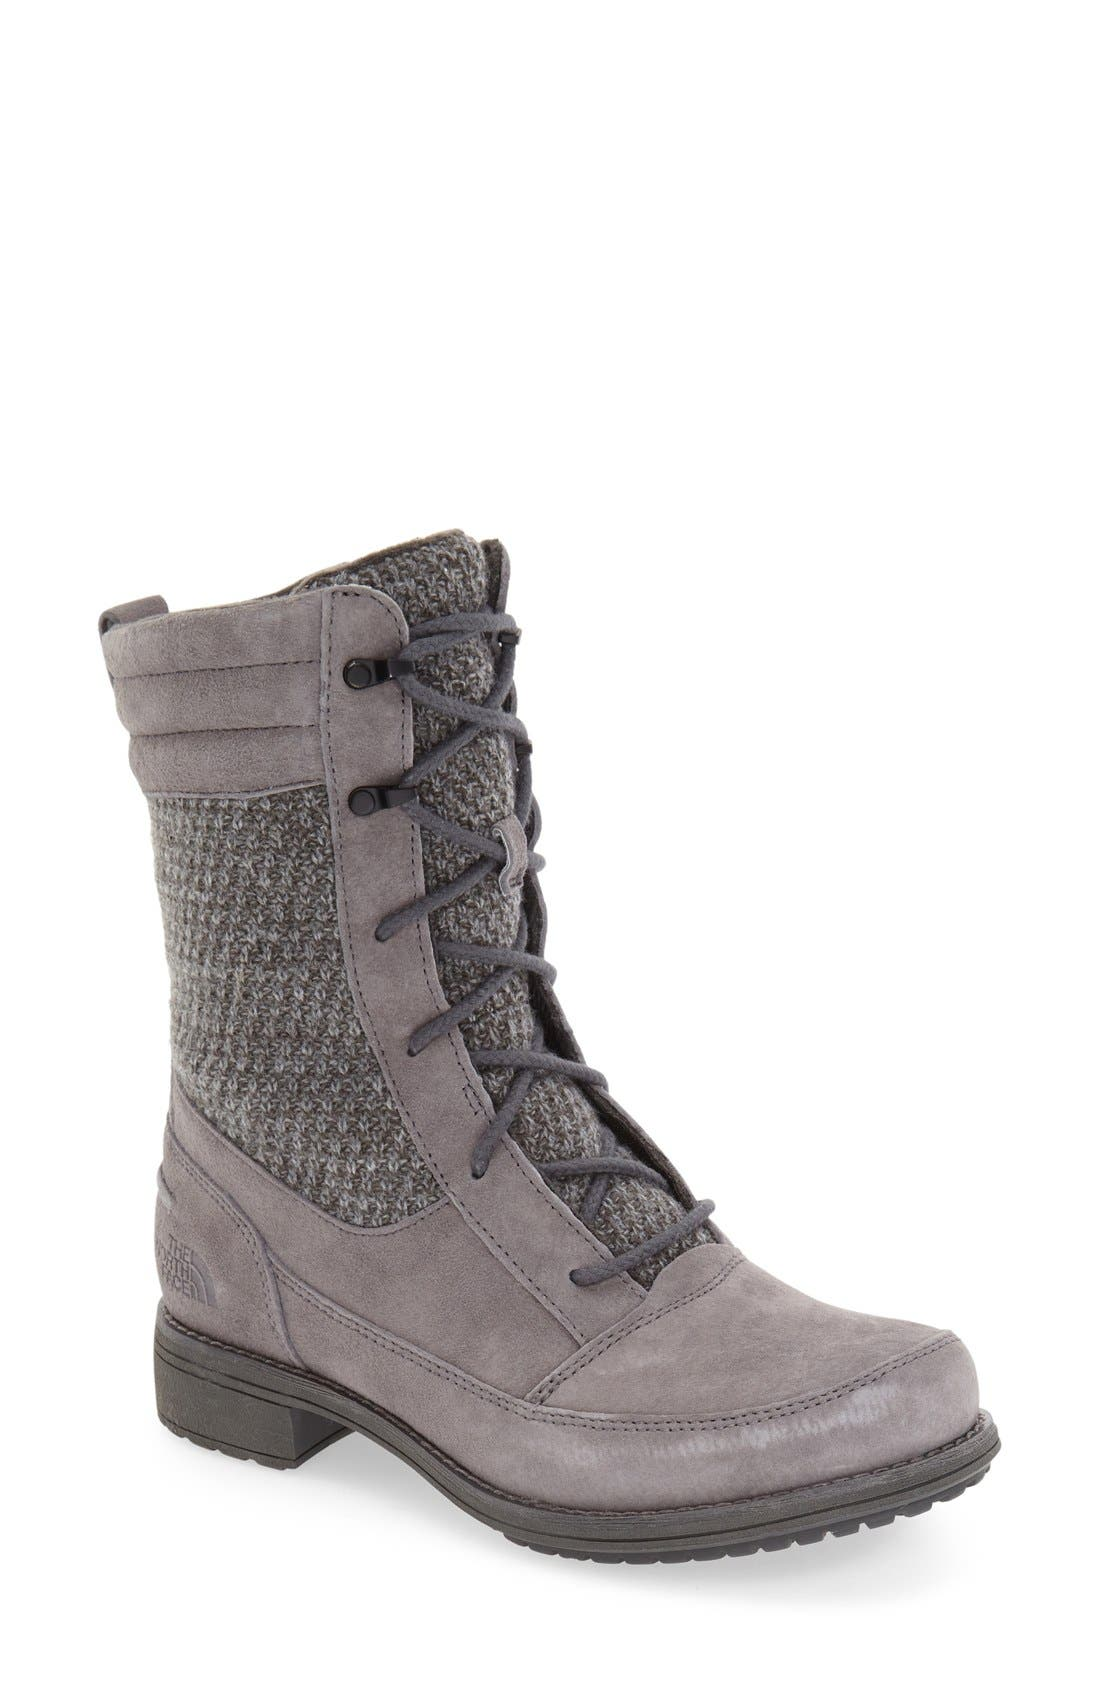 Alternate Image 1 Selected - The North Face 'Bridgeton Lace' Waterproof Boot (Women)